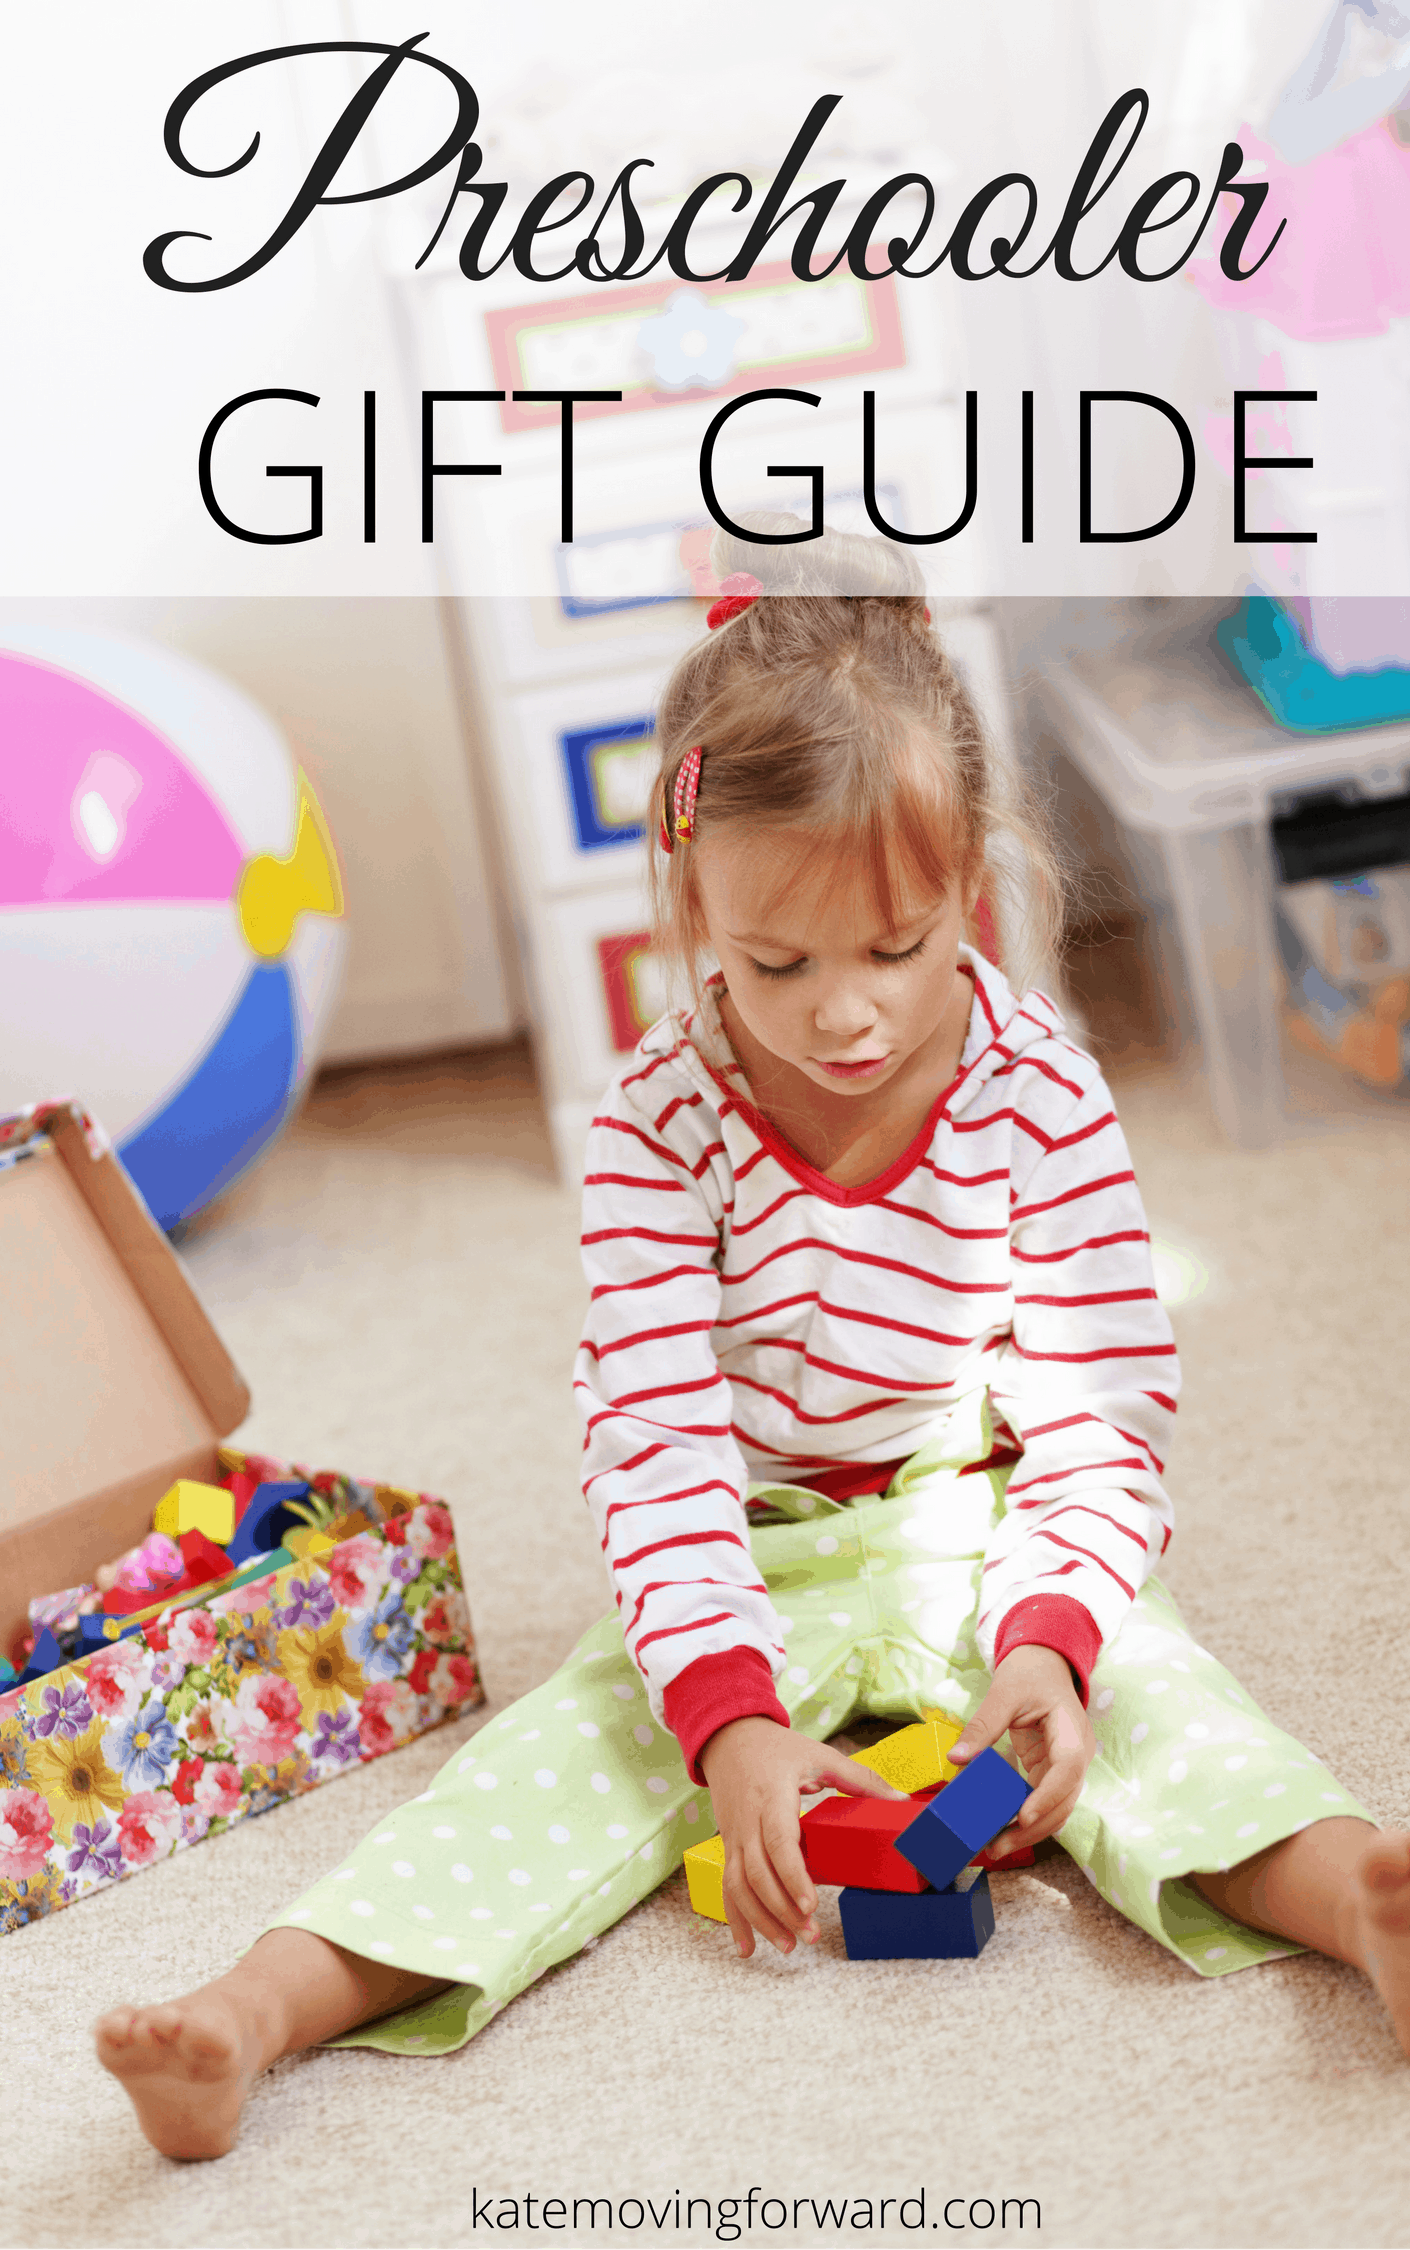 Preschool Gift Guide - Great picks for preschool age children from experienced moms! Educational, imaginative, FUN choices for every kid!